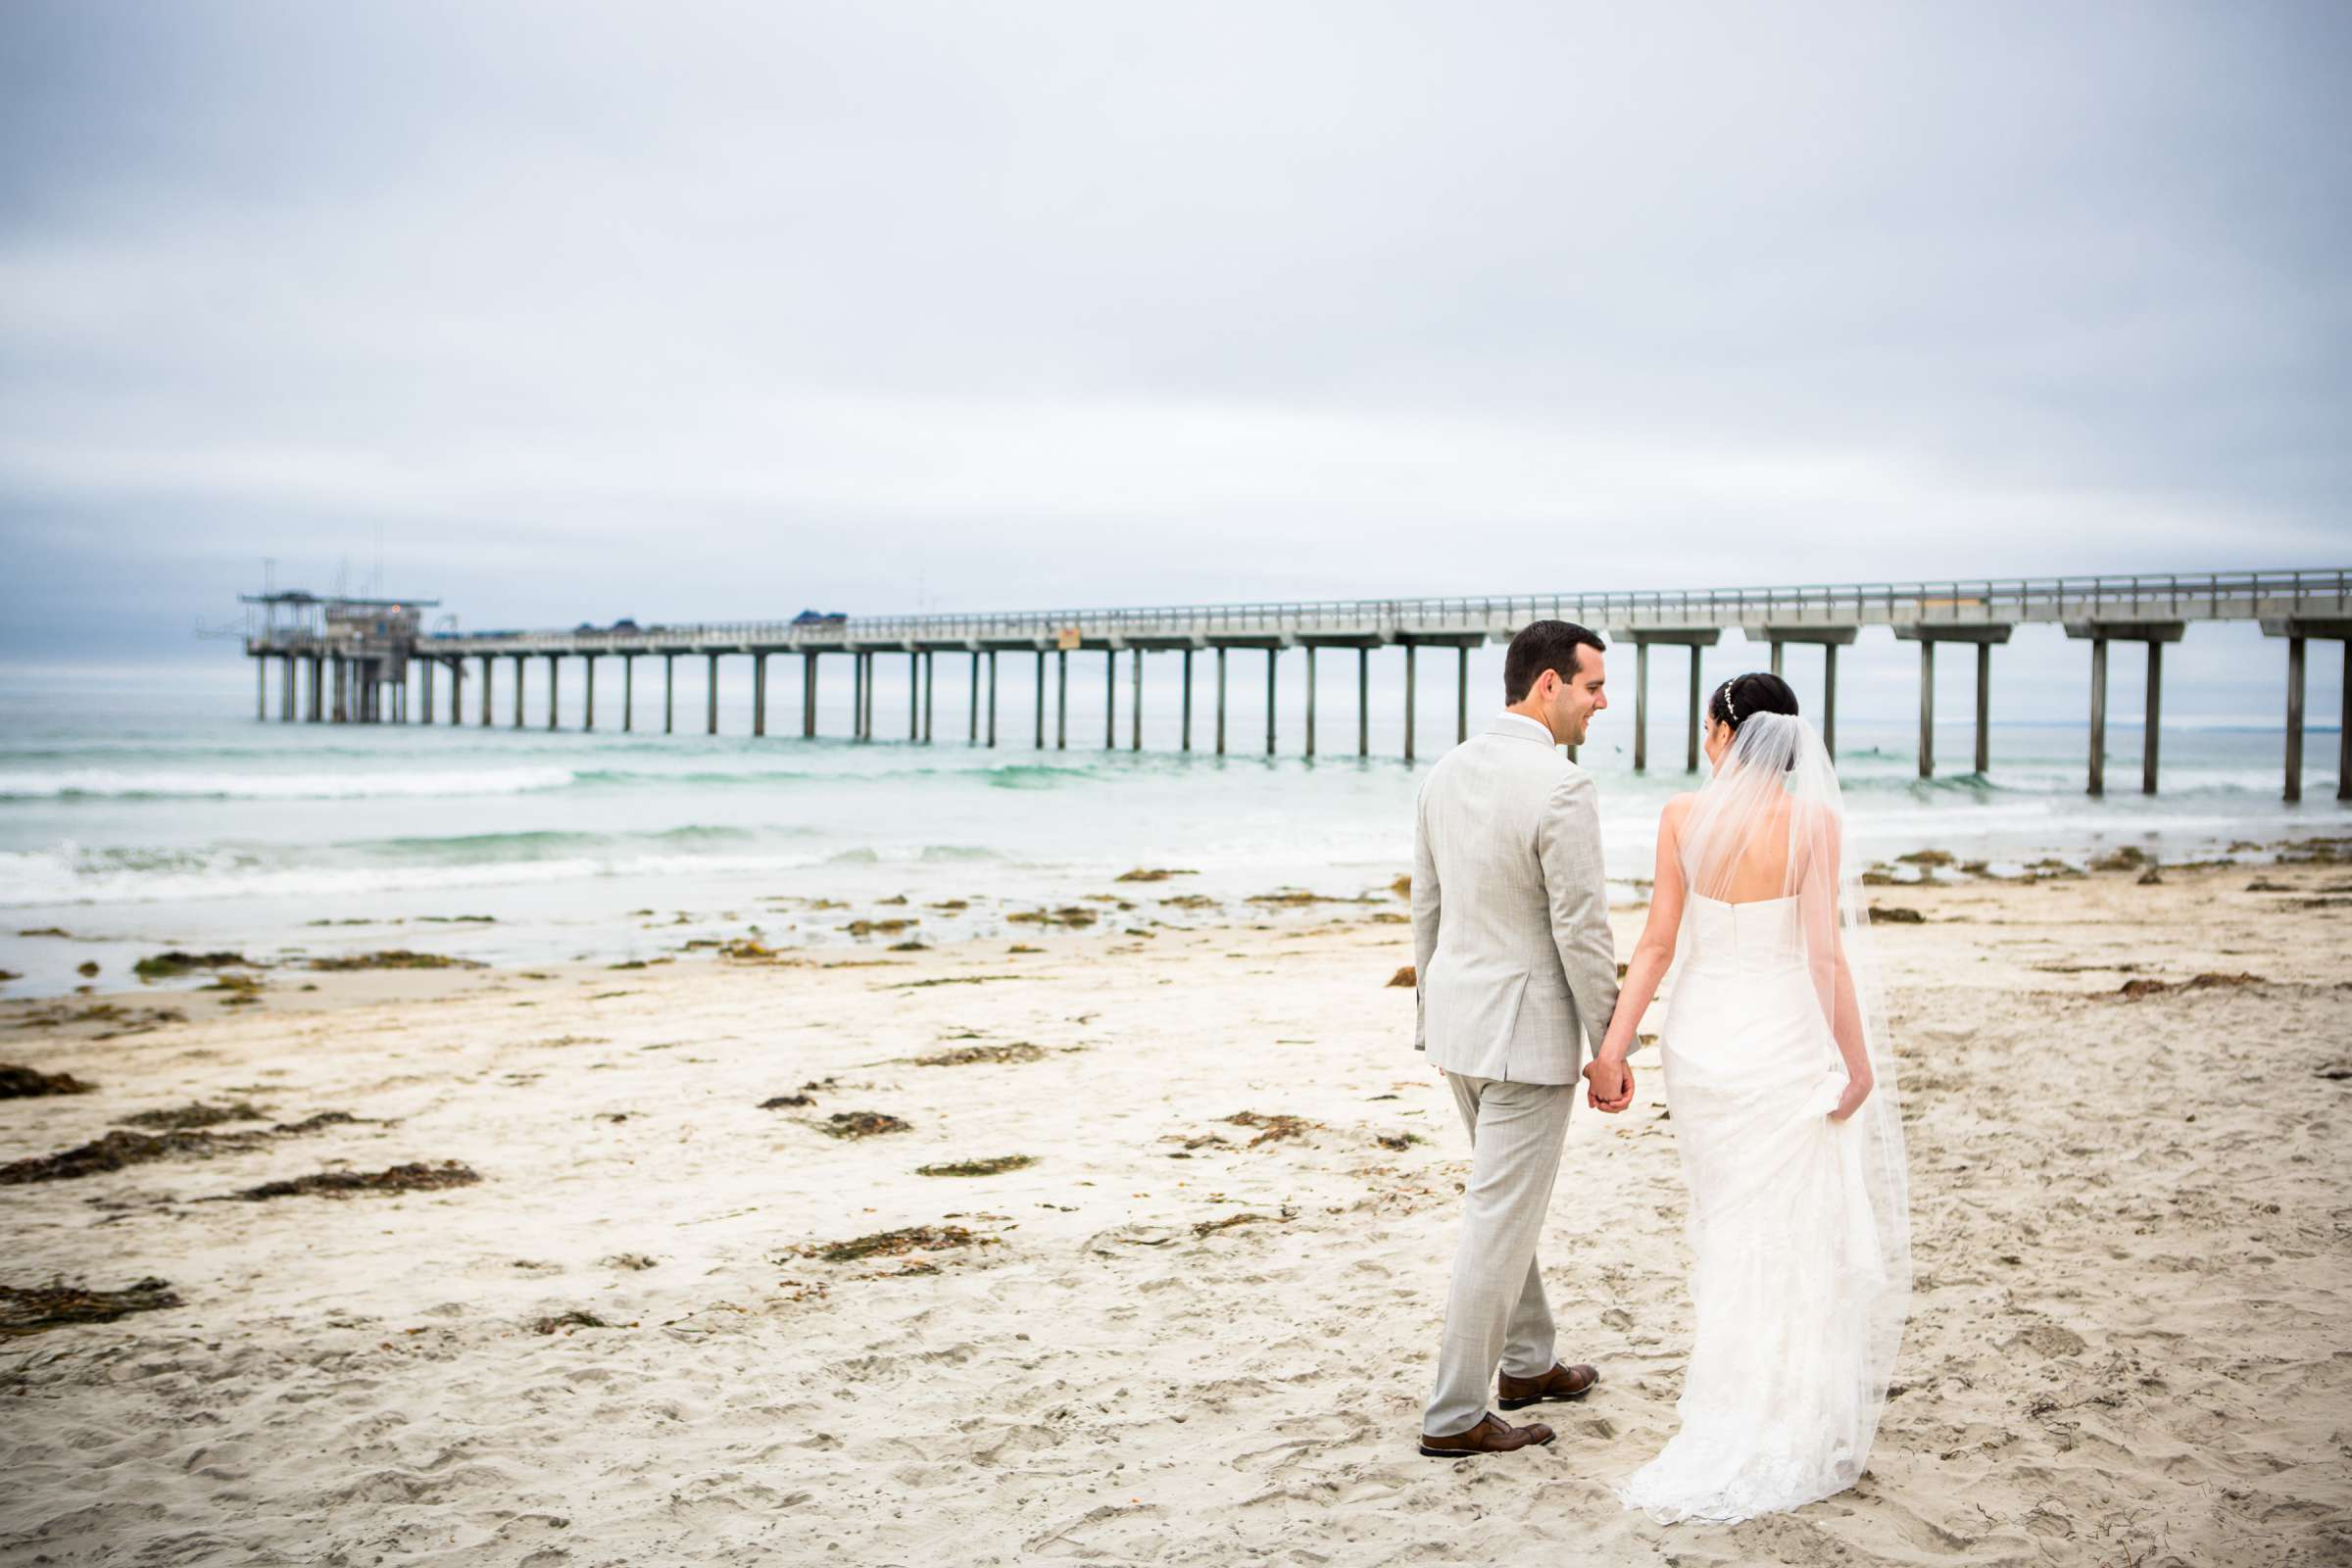 Scripps Seaside Forum Wedding coordinated by Francine Ribeau Events, Shaina and Christopher Wedding Photo #7 by True Photography